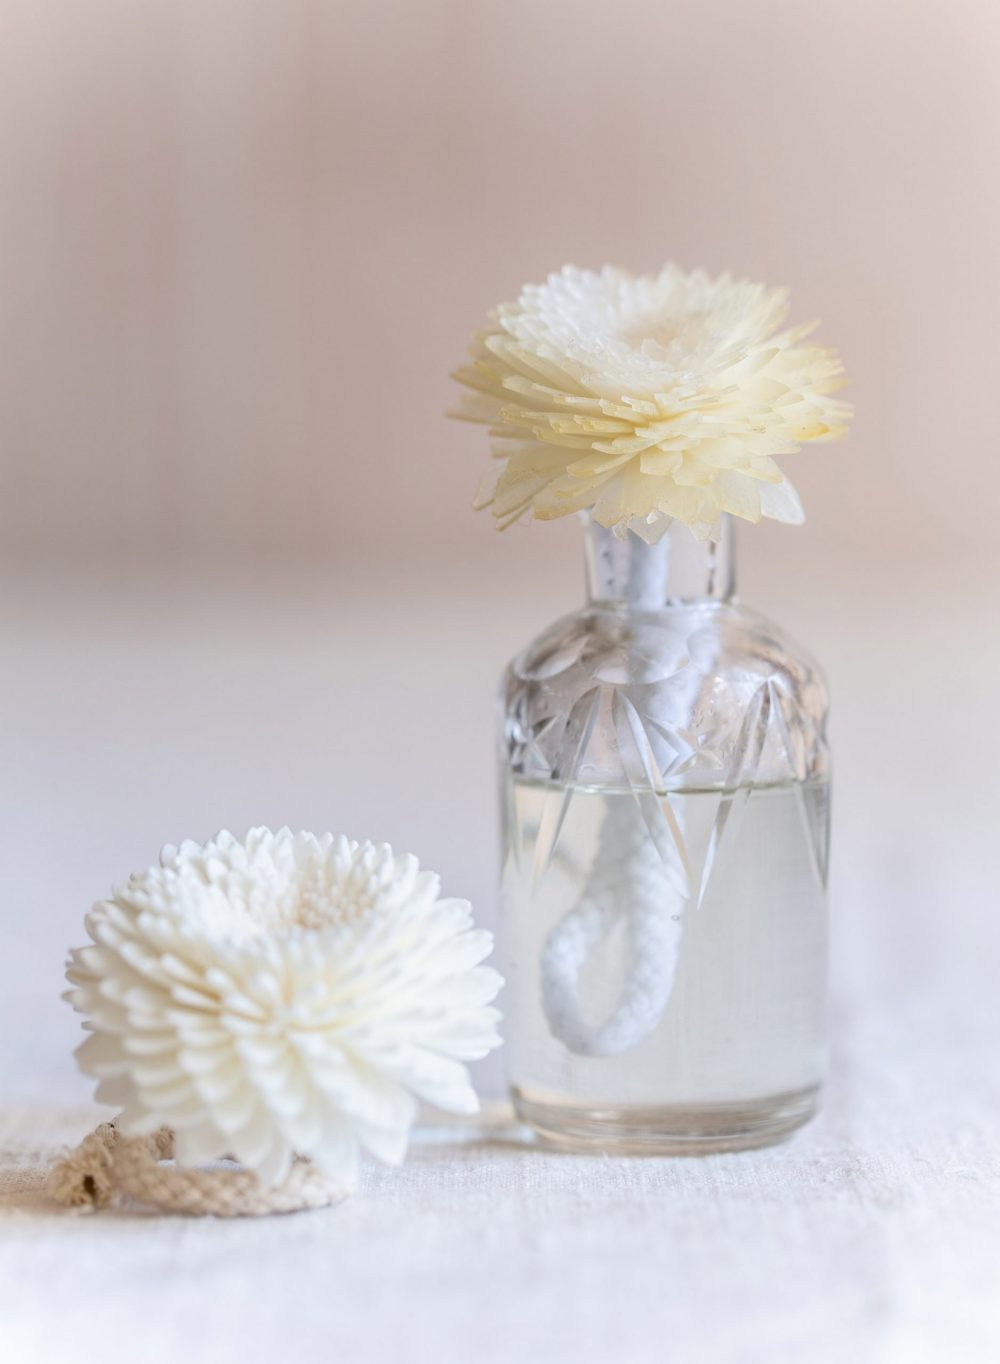 Mini Flower Diffuser with Vintage Bottle